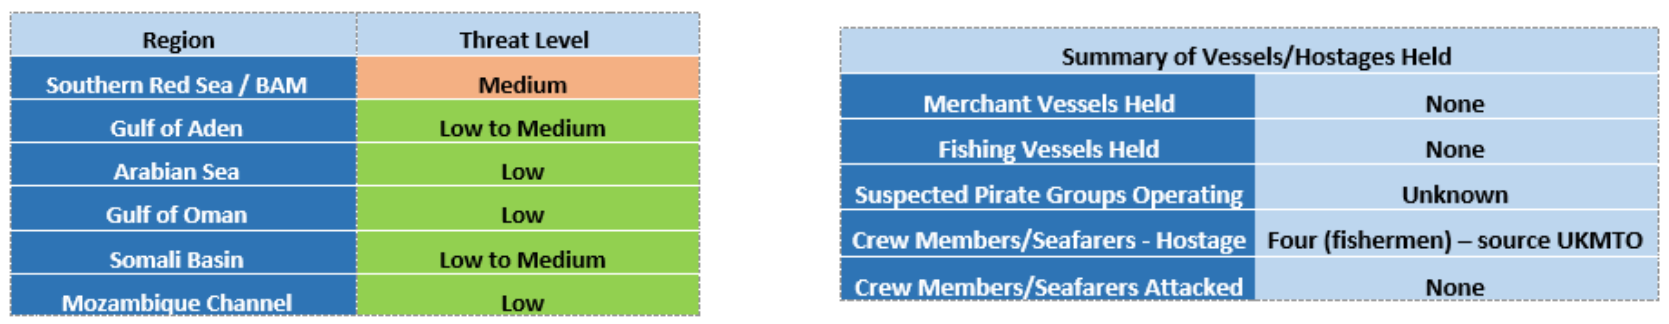 piracy risk table